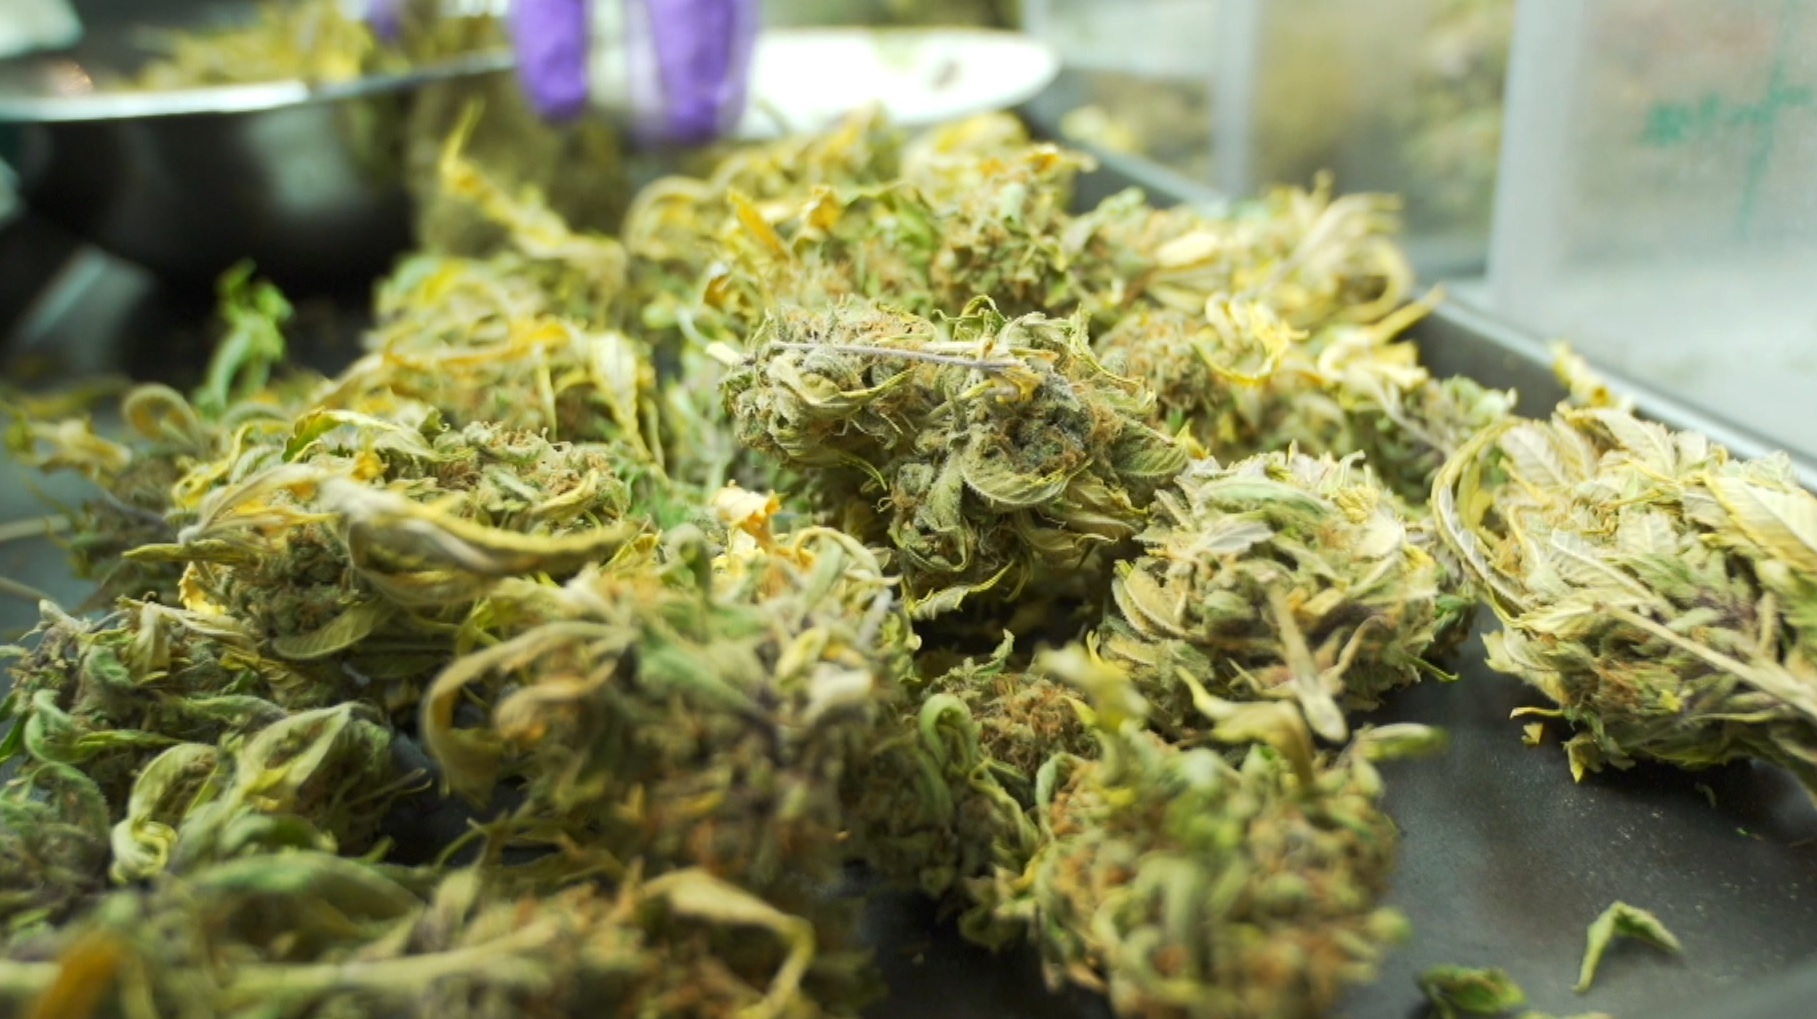 marijuana remains the third most popular Marijuana policy at the state level has shifted significantly in recent years as states have moved to legalize the drug for both medicinal and adult use unfortunately, federal marijuana policy remains rooted in the past, as all types of marijuana continue to remain illegal under federal law it is time for congress and the administration to face the.